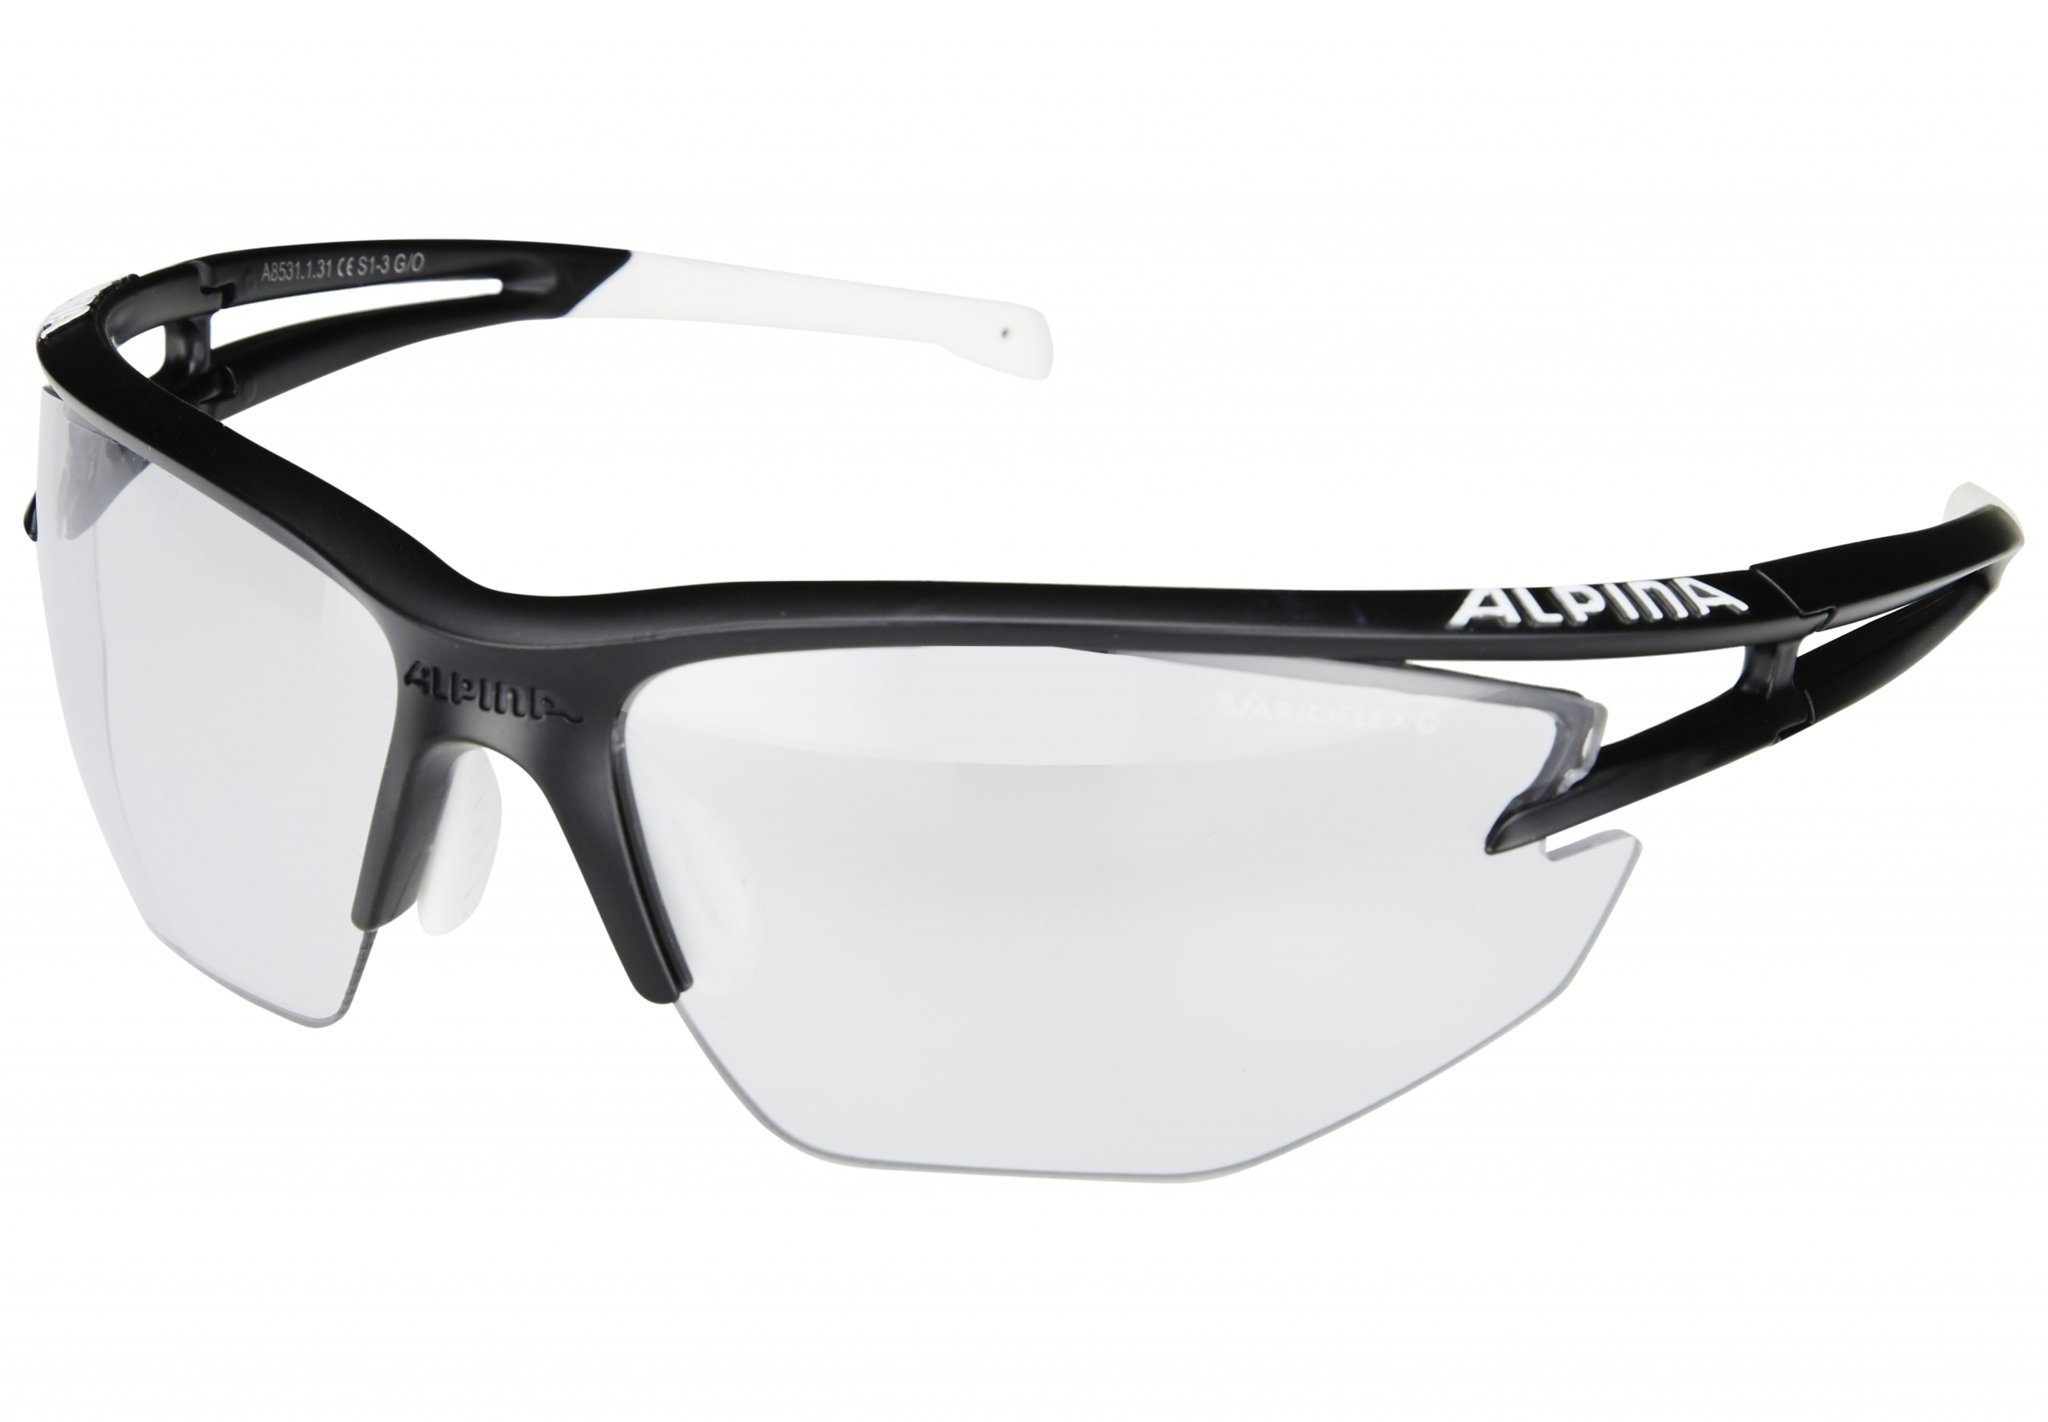 Alpina Radsportbrille »Eye-5 HR VL+«